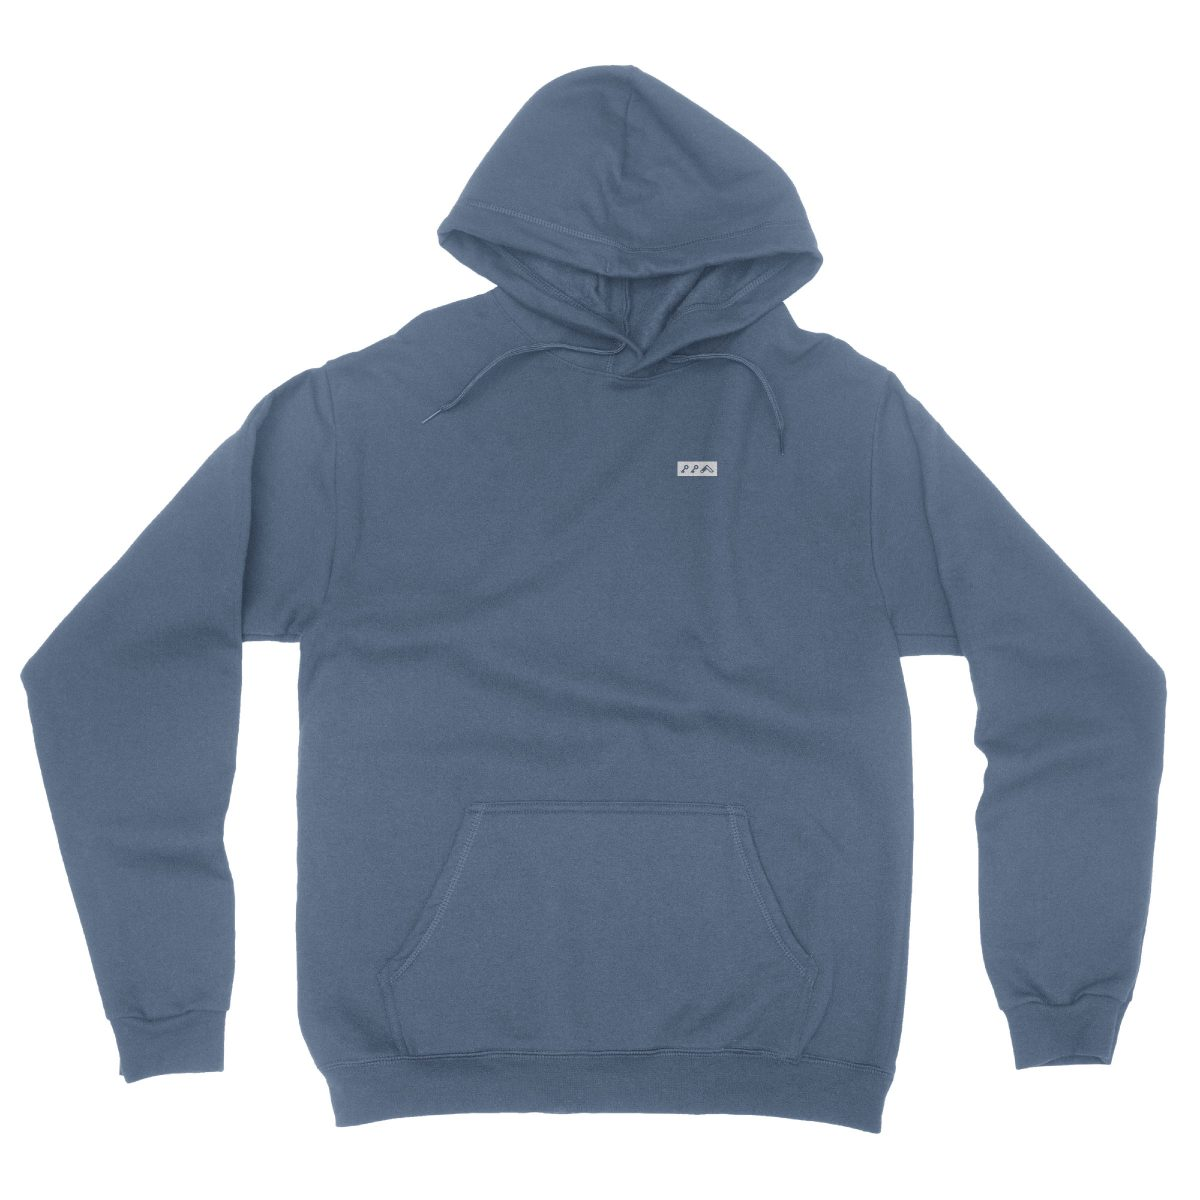 KIKICUTT white icon on an indigo classic and comfortable hoodie